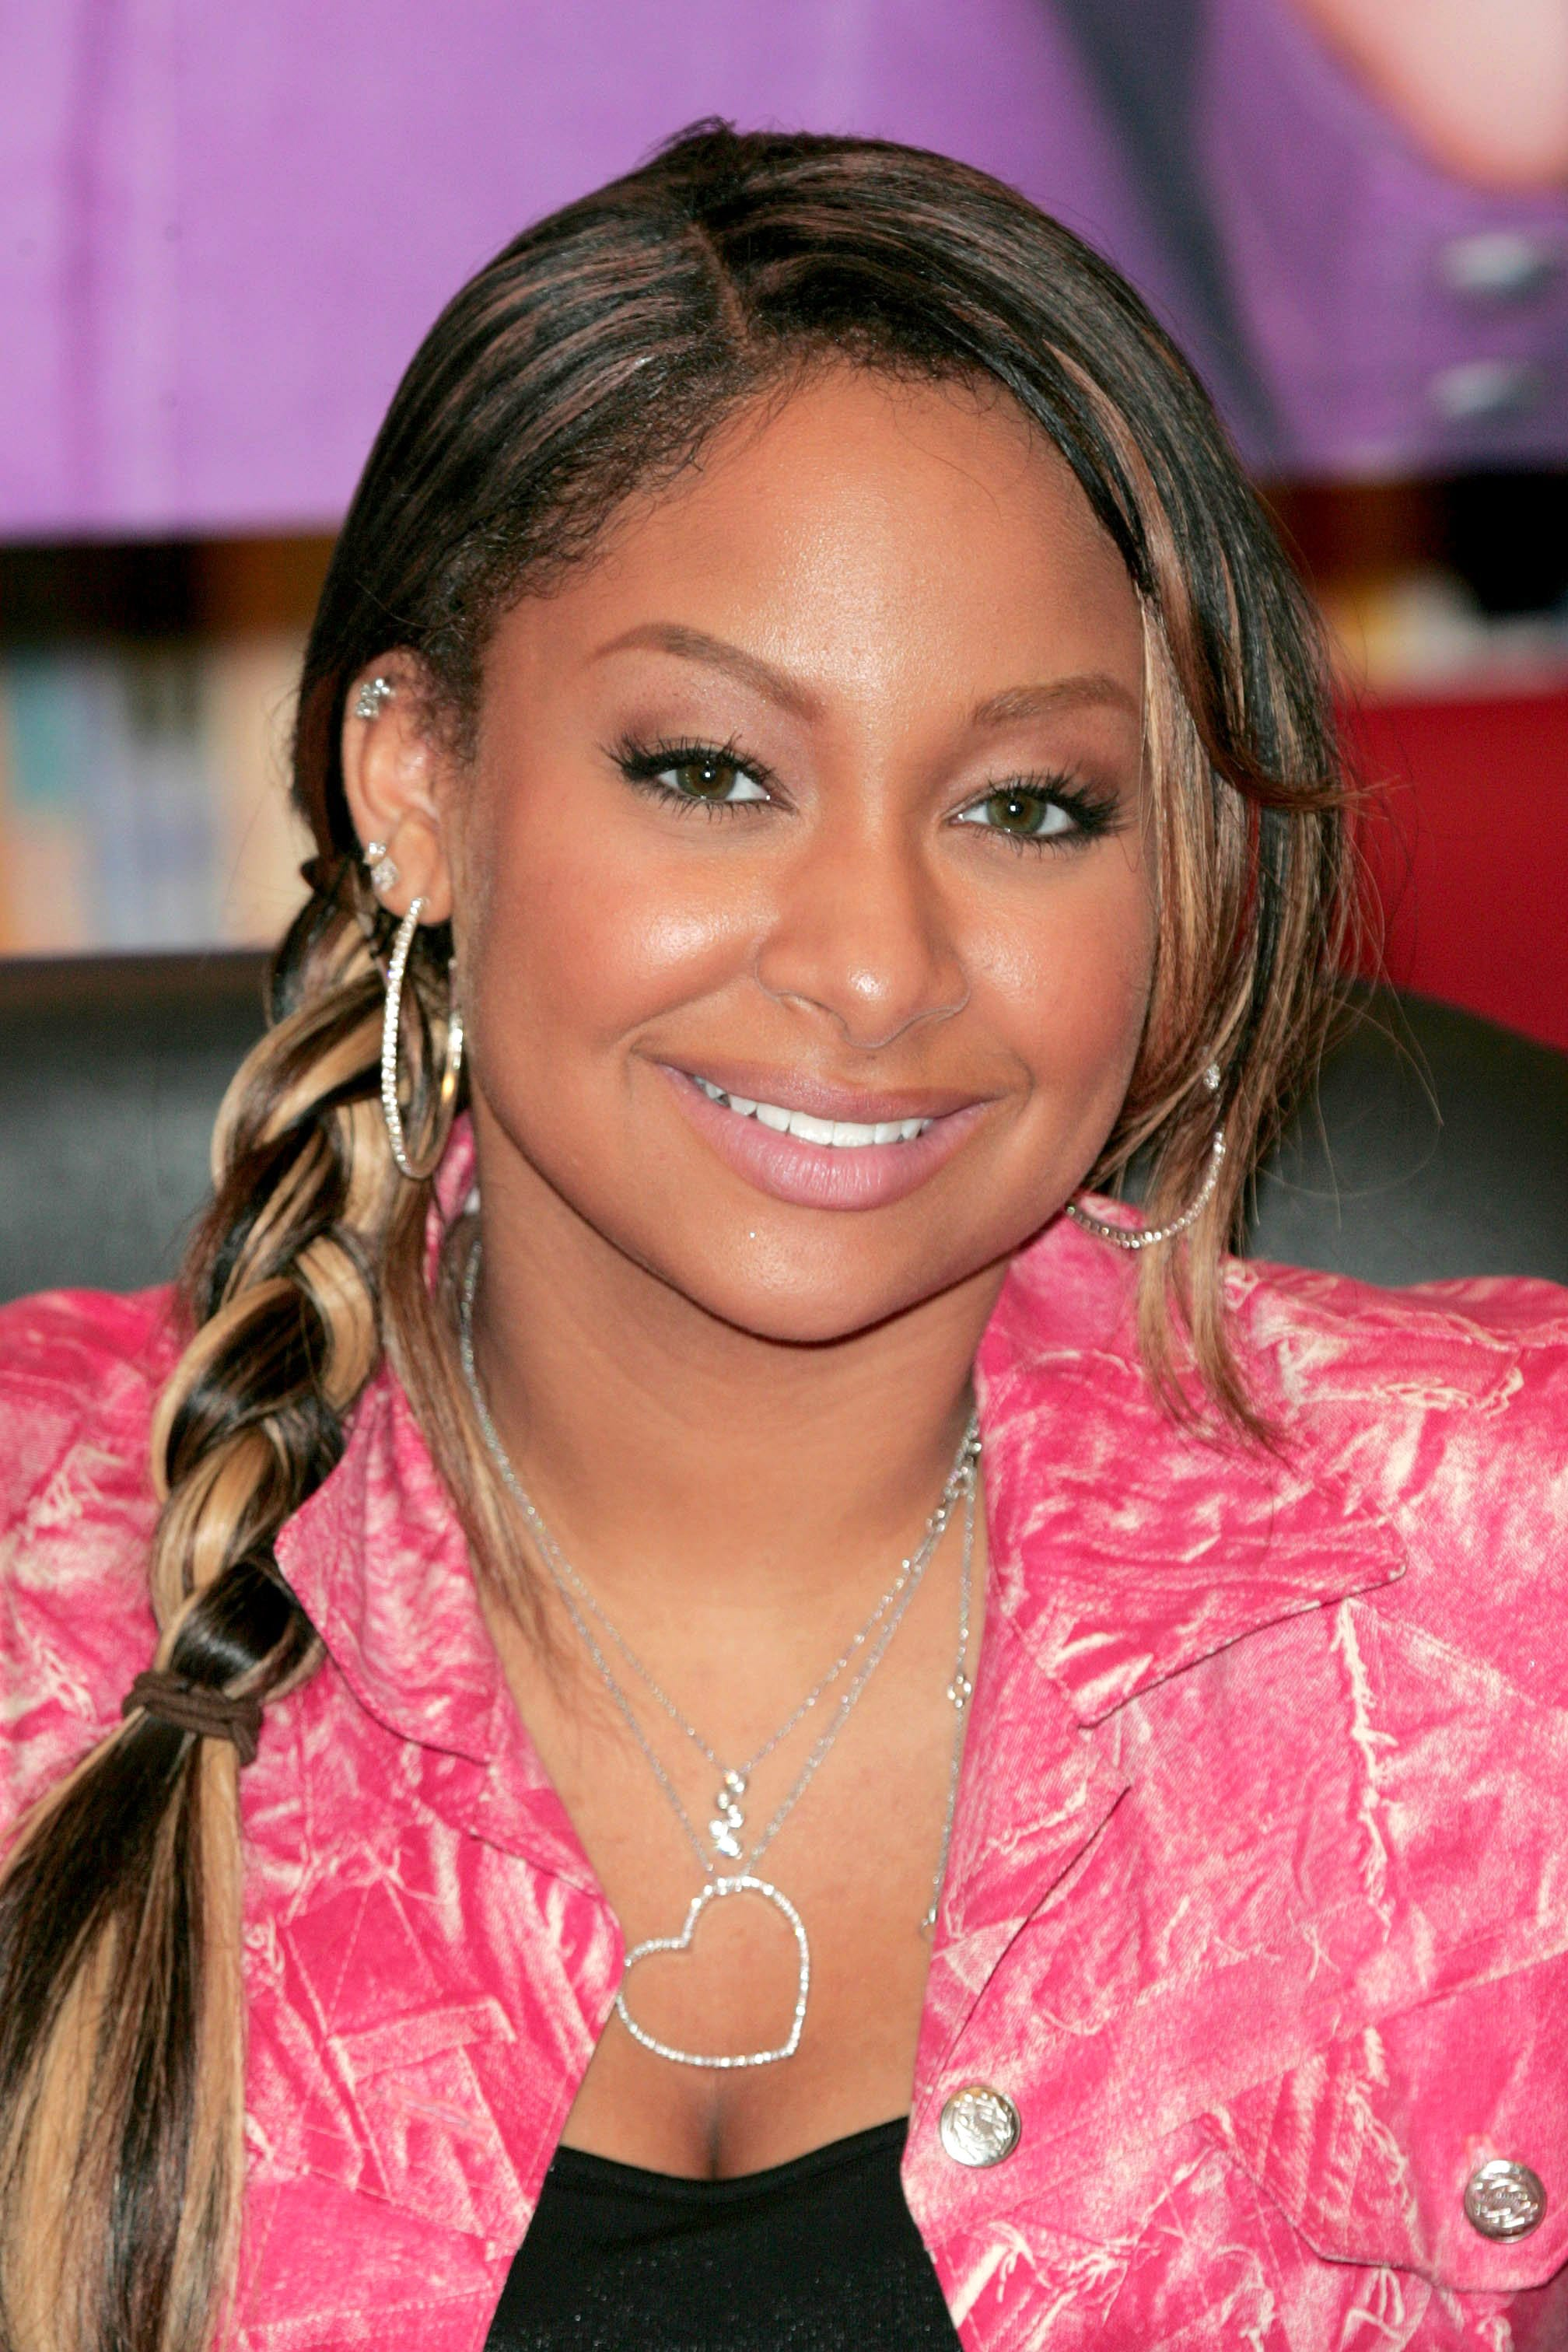 Hook up my space thats so raven